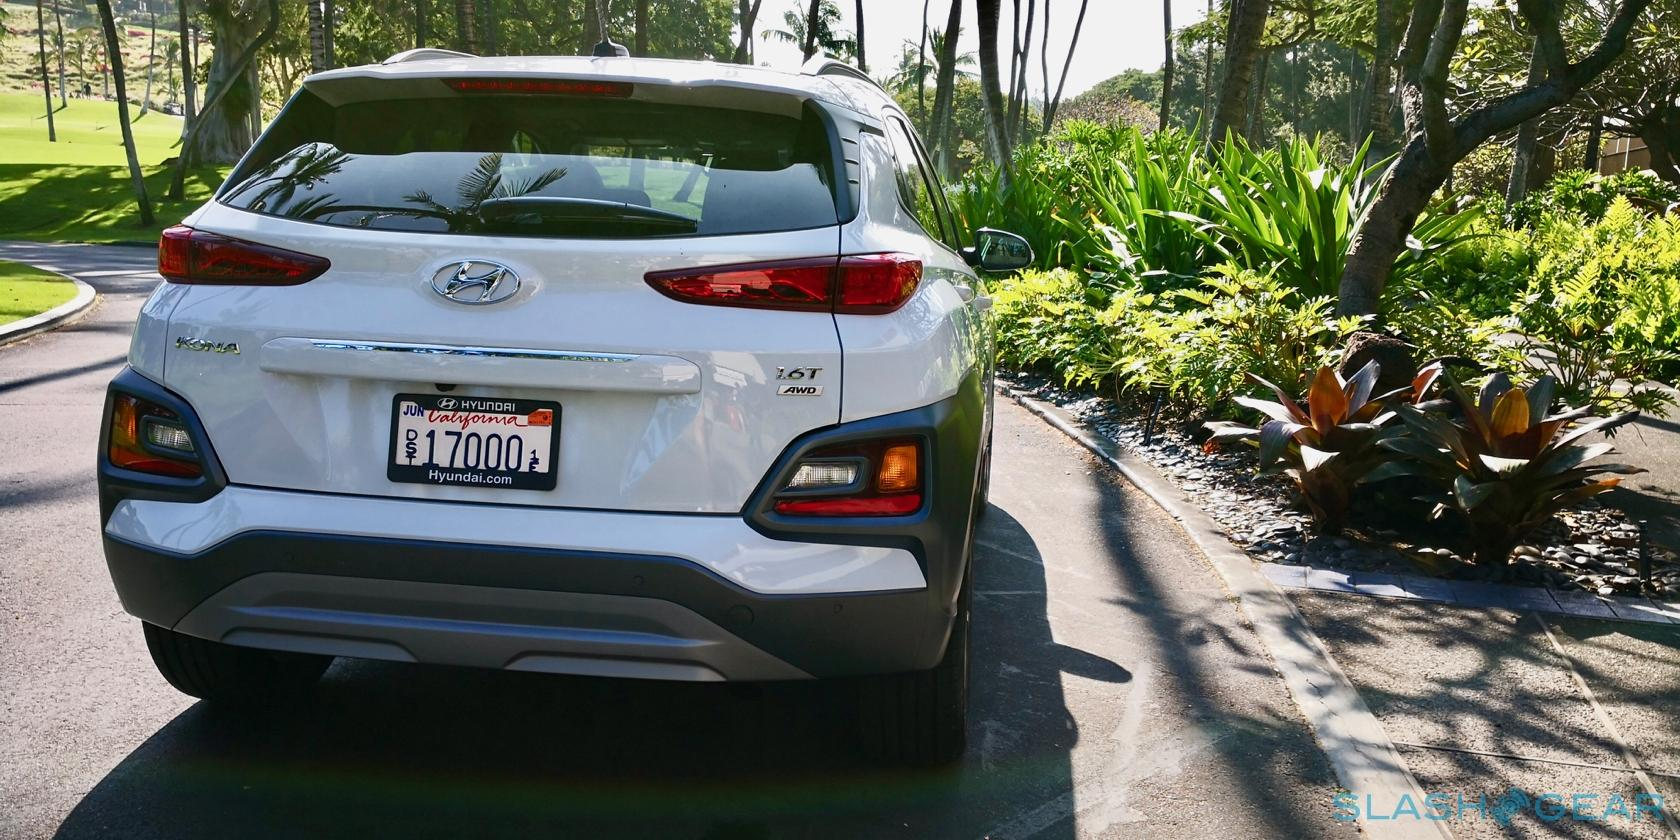 2018 Hyundai Kona review: A subcompact crossover SUV with an